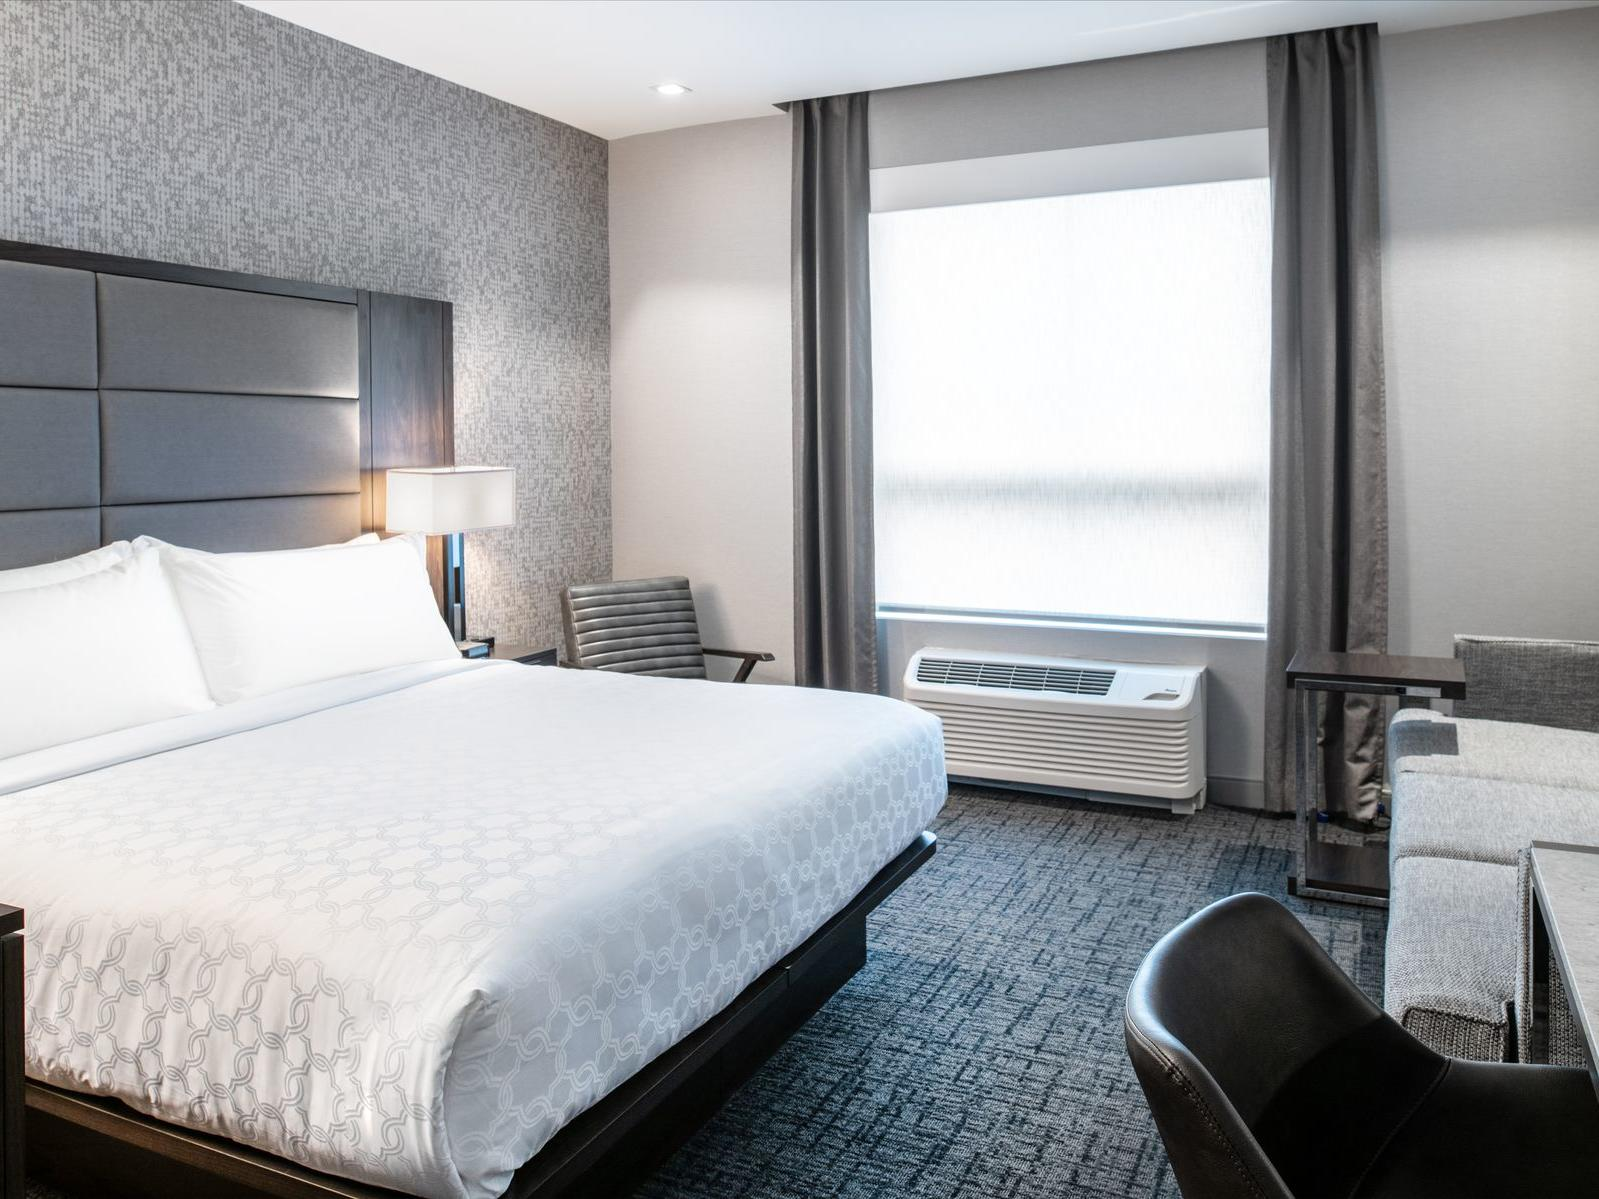 king bed in modern hotel room with window